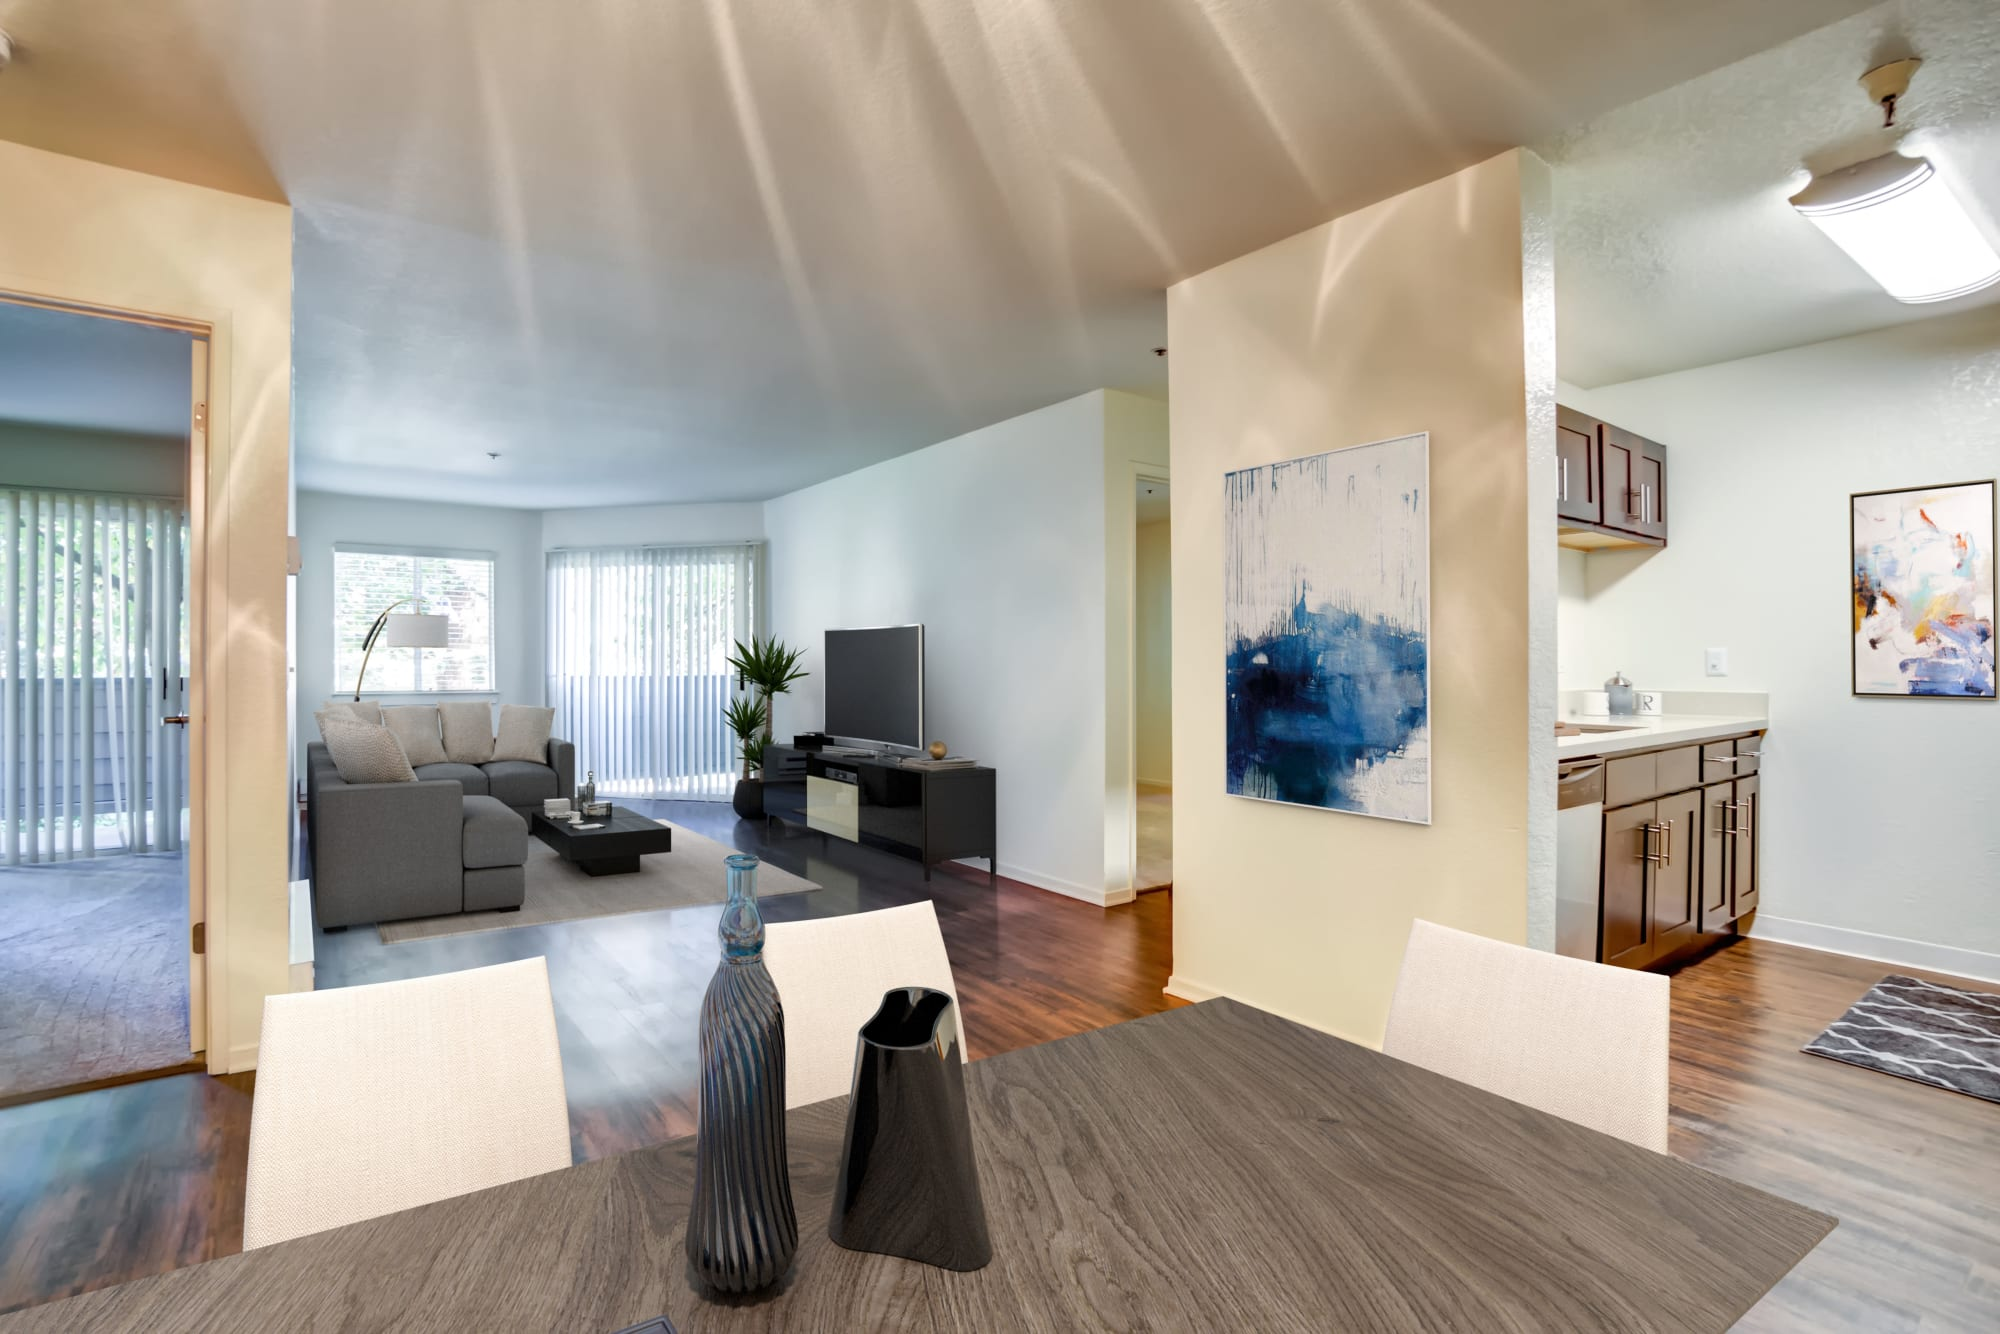 Hardwood-style floors in a living room at Serramonte Ridge Apartment Homes in Daly City, California